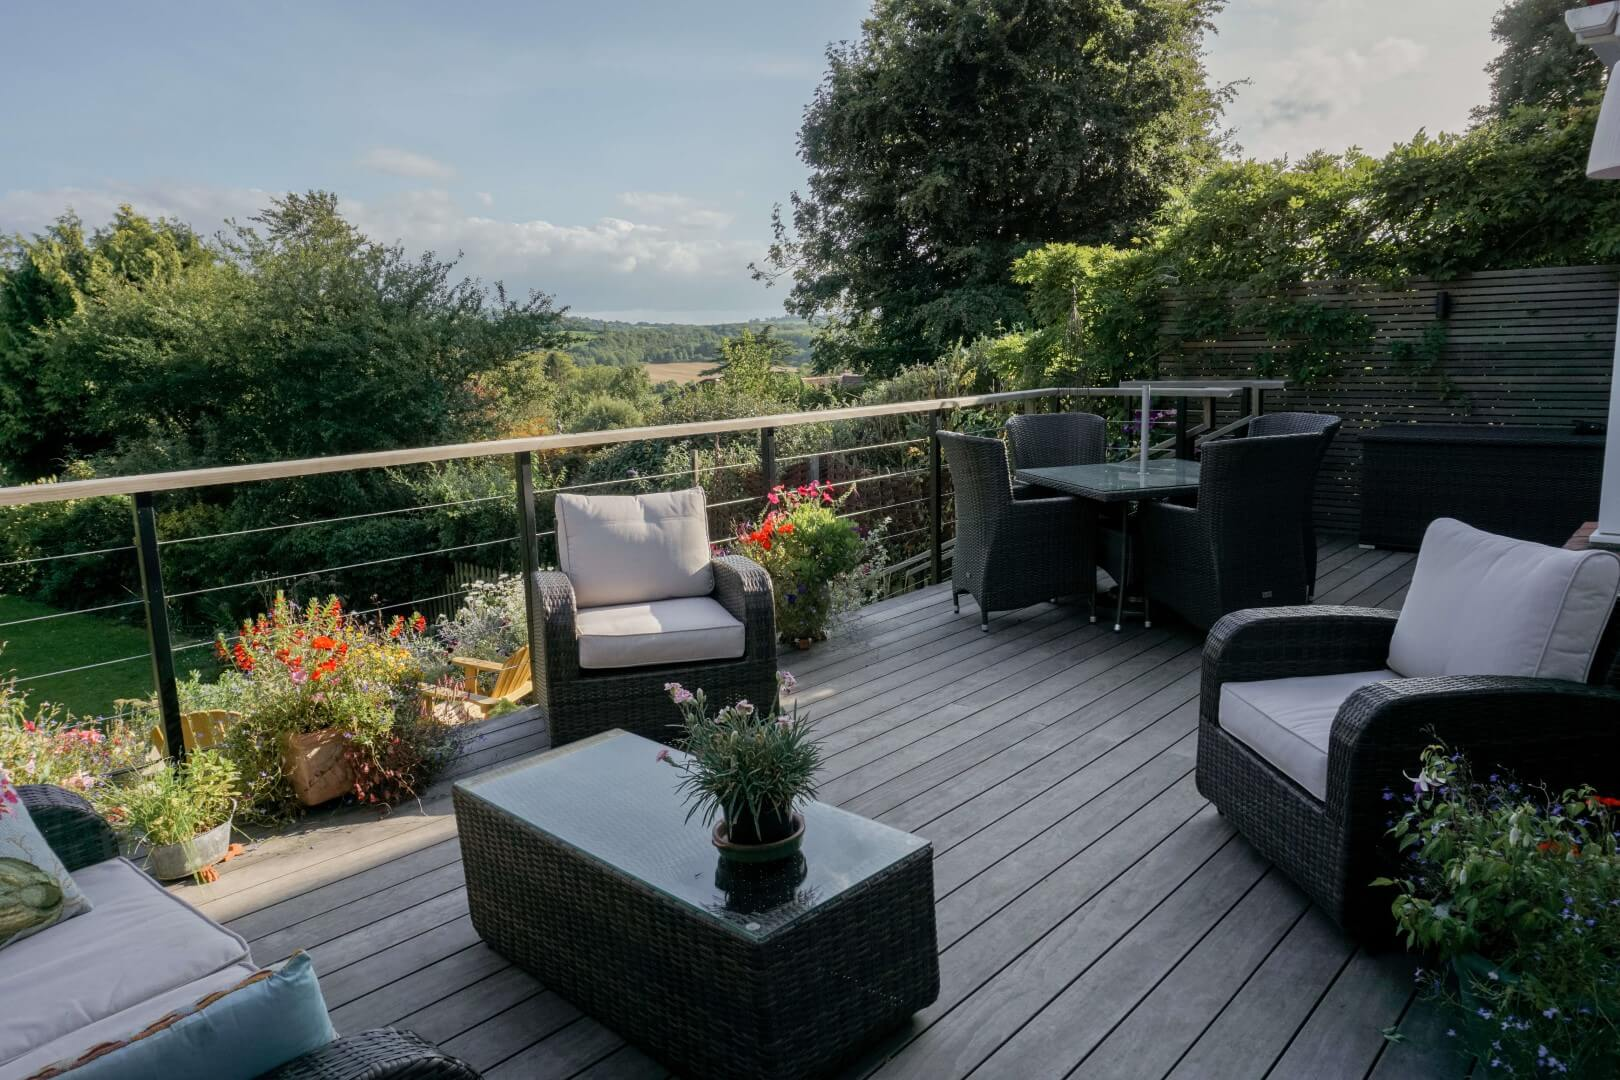 NORTH SOMERSET LARGE DECK AND RURAL LANDSCAPE